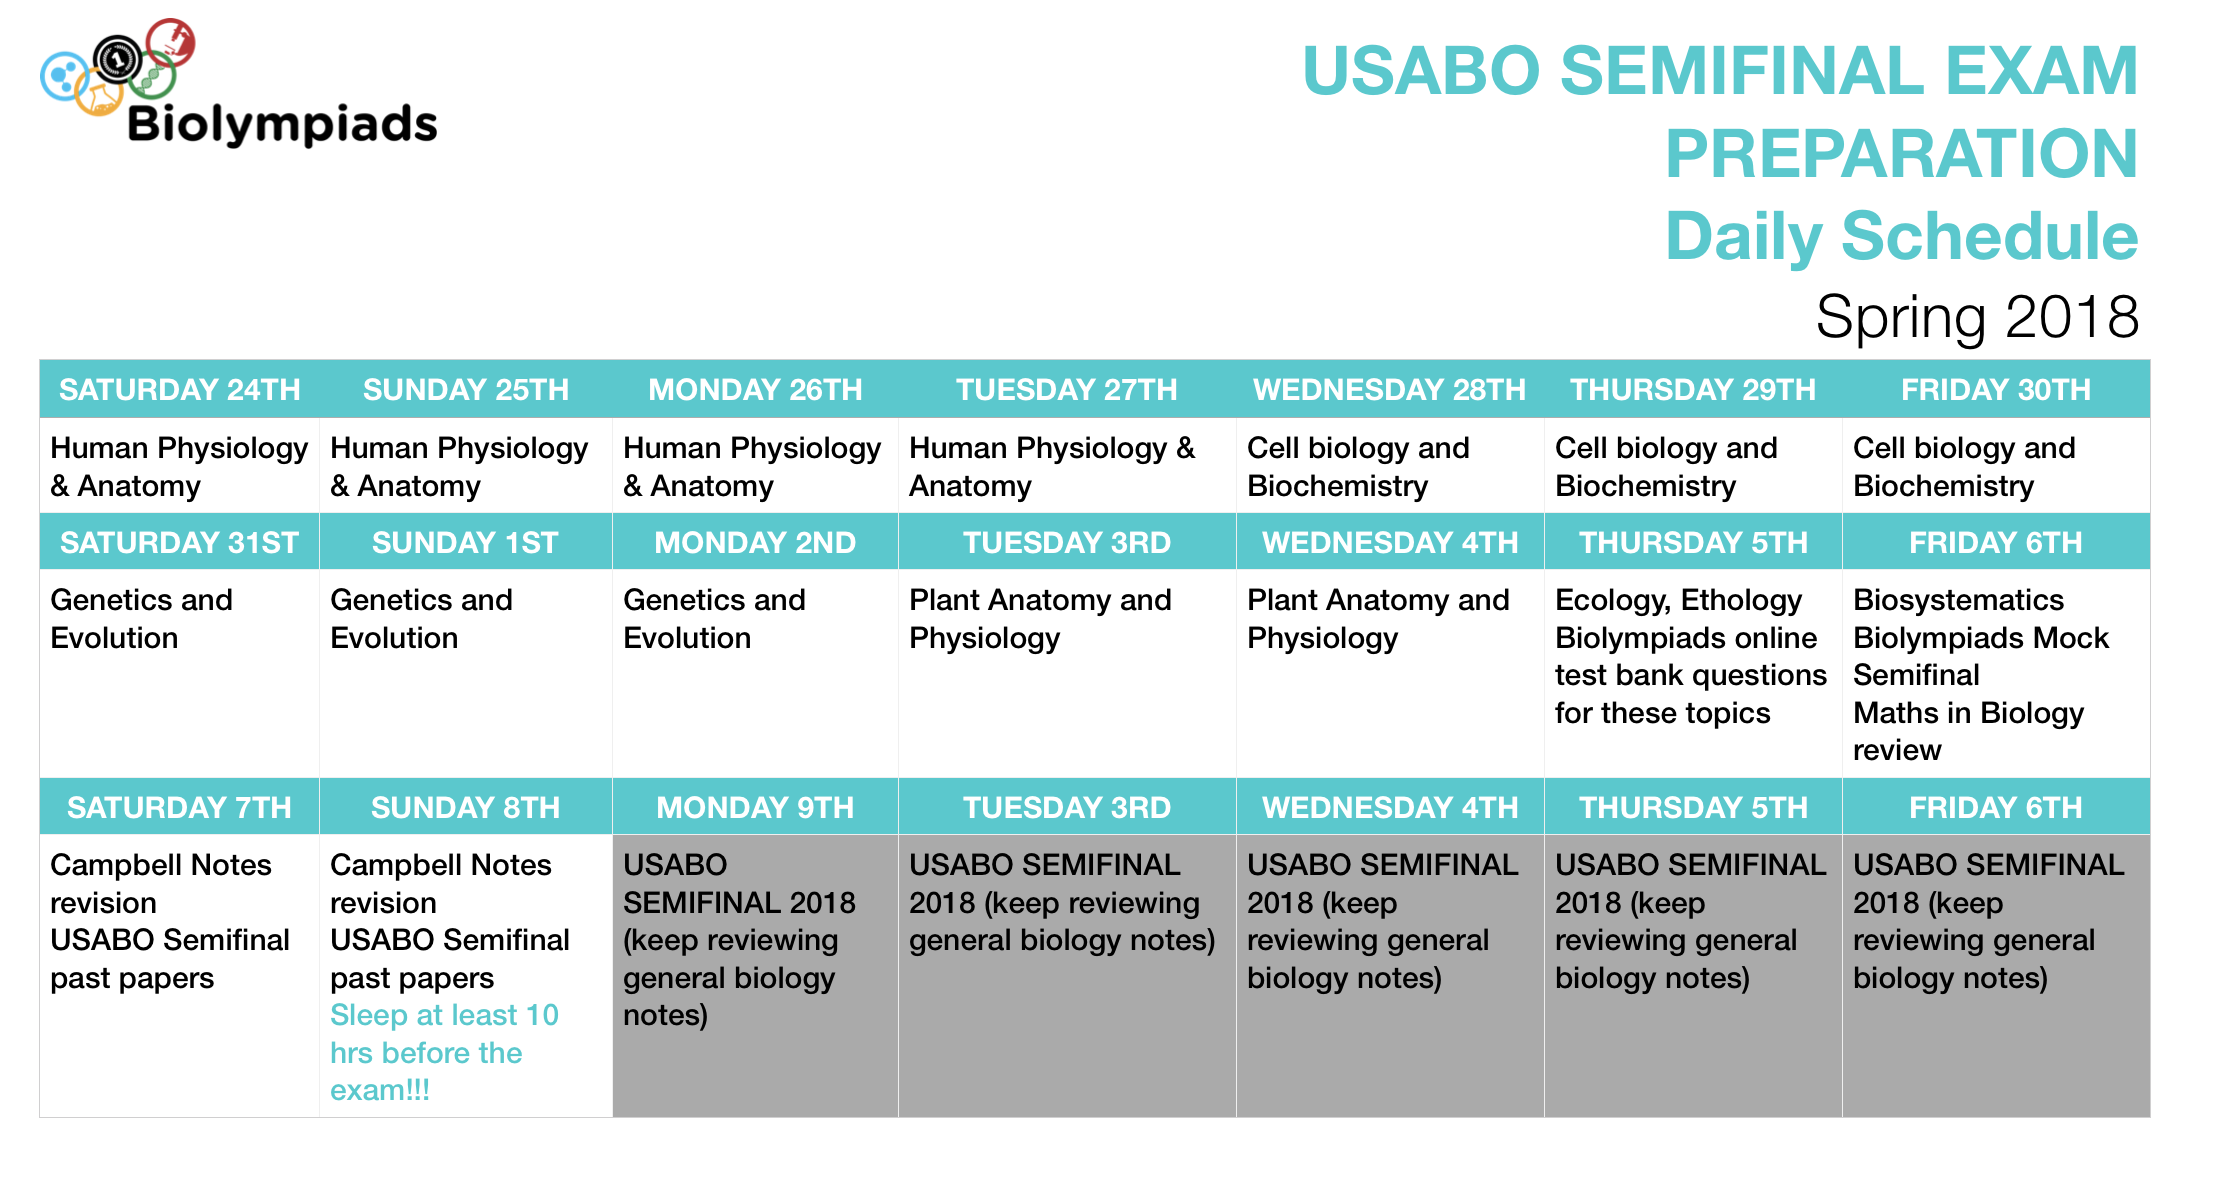 How to get ready for the USABO Semifinals 2018 | Biolympiads